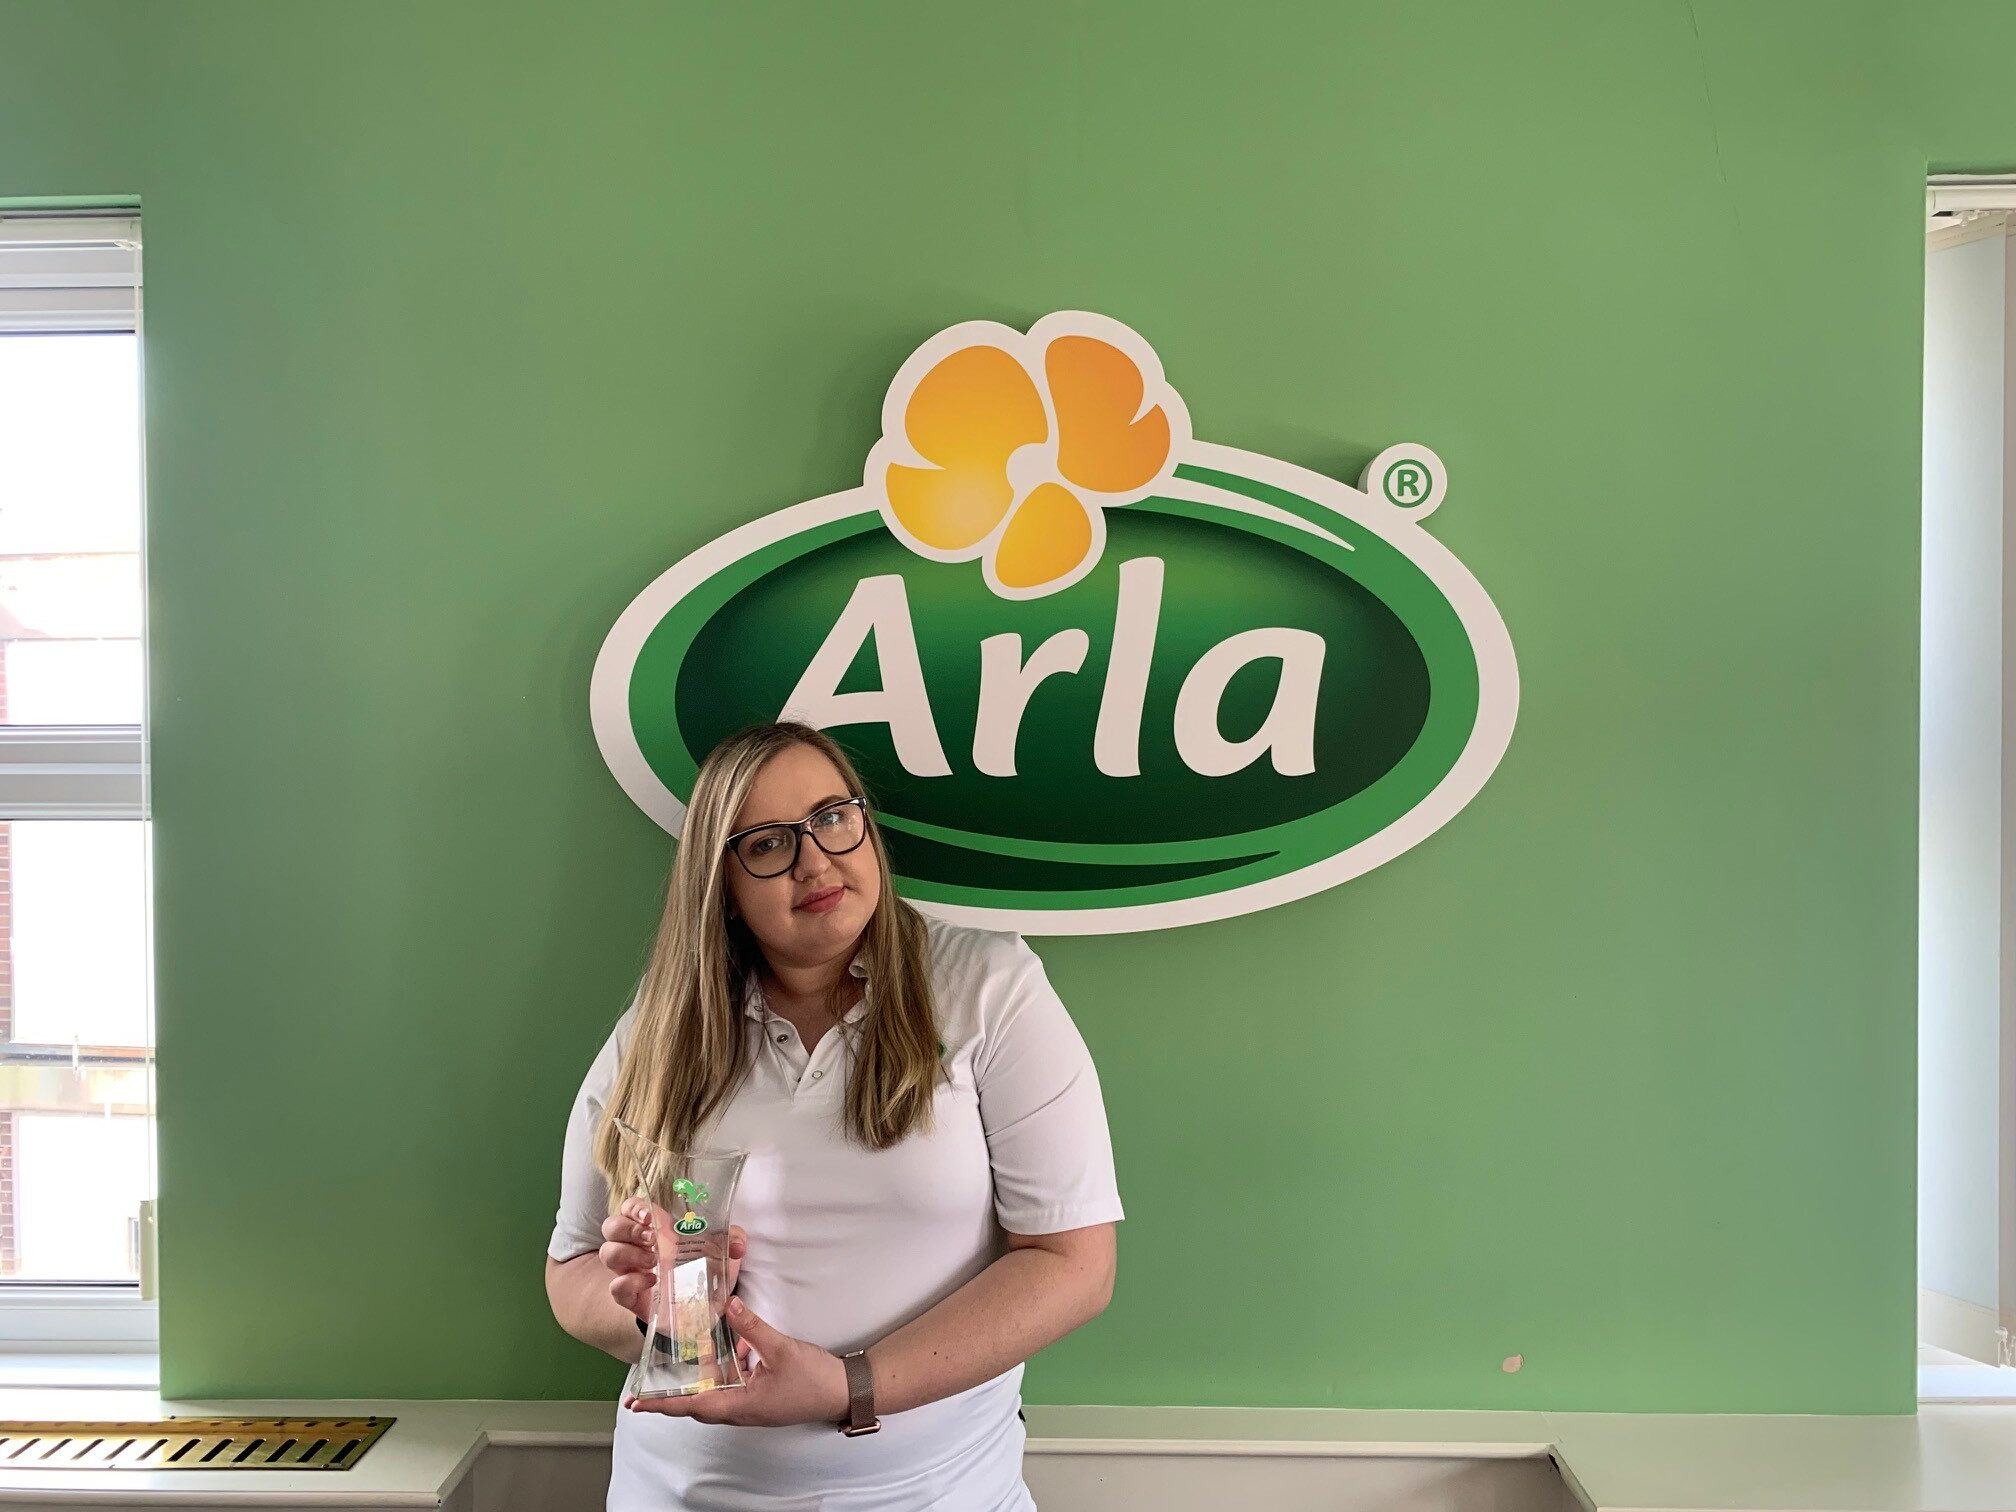 Dairy Technologist Apprentice Jowita wins Arla companywide Cream of the Crop award